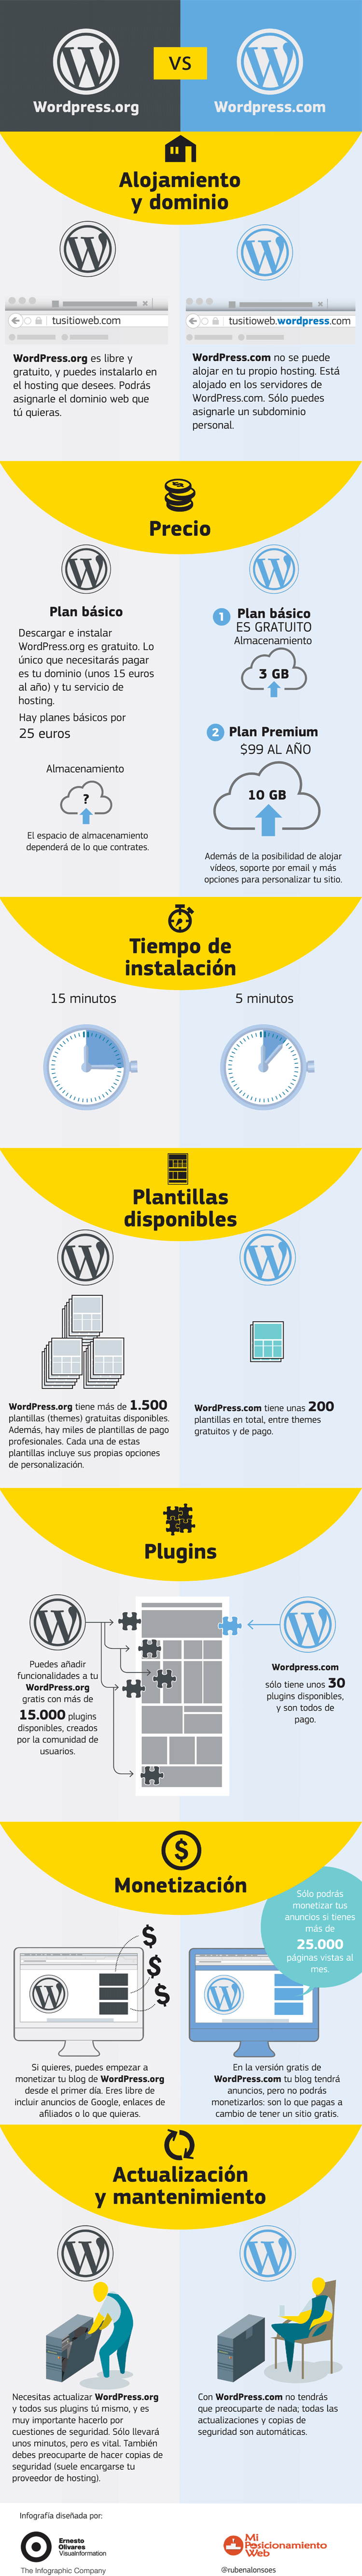 Diferencias wordpress-com-vs-wordpress-org